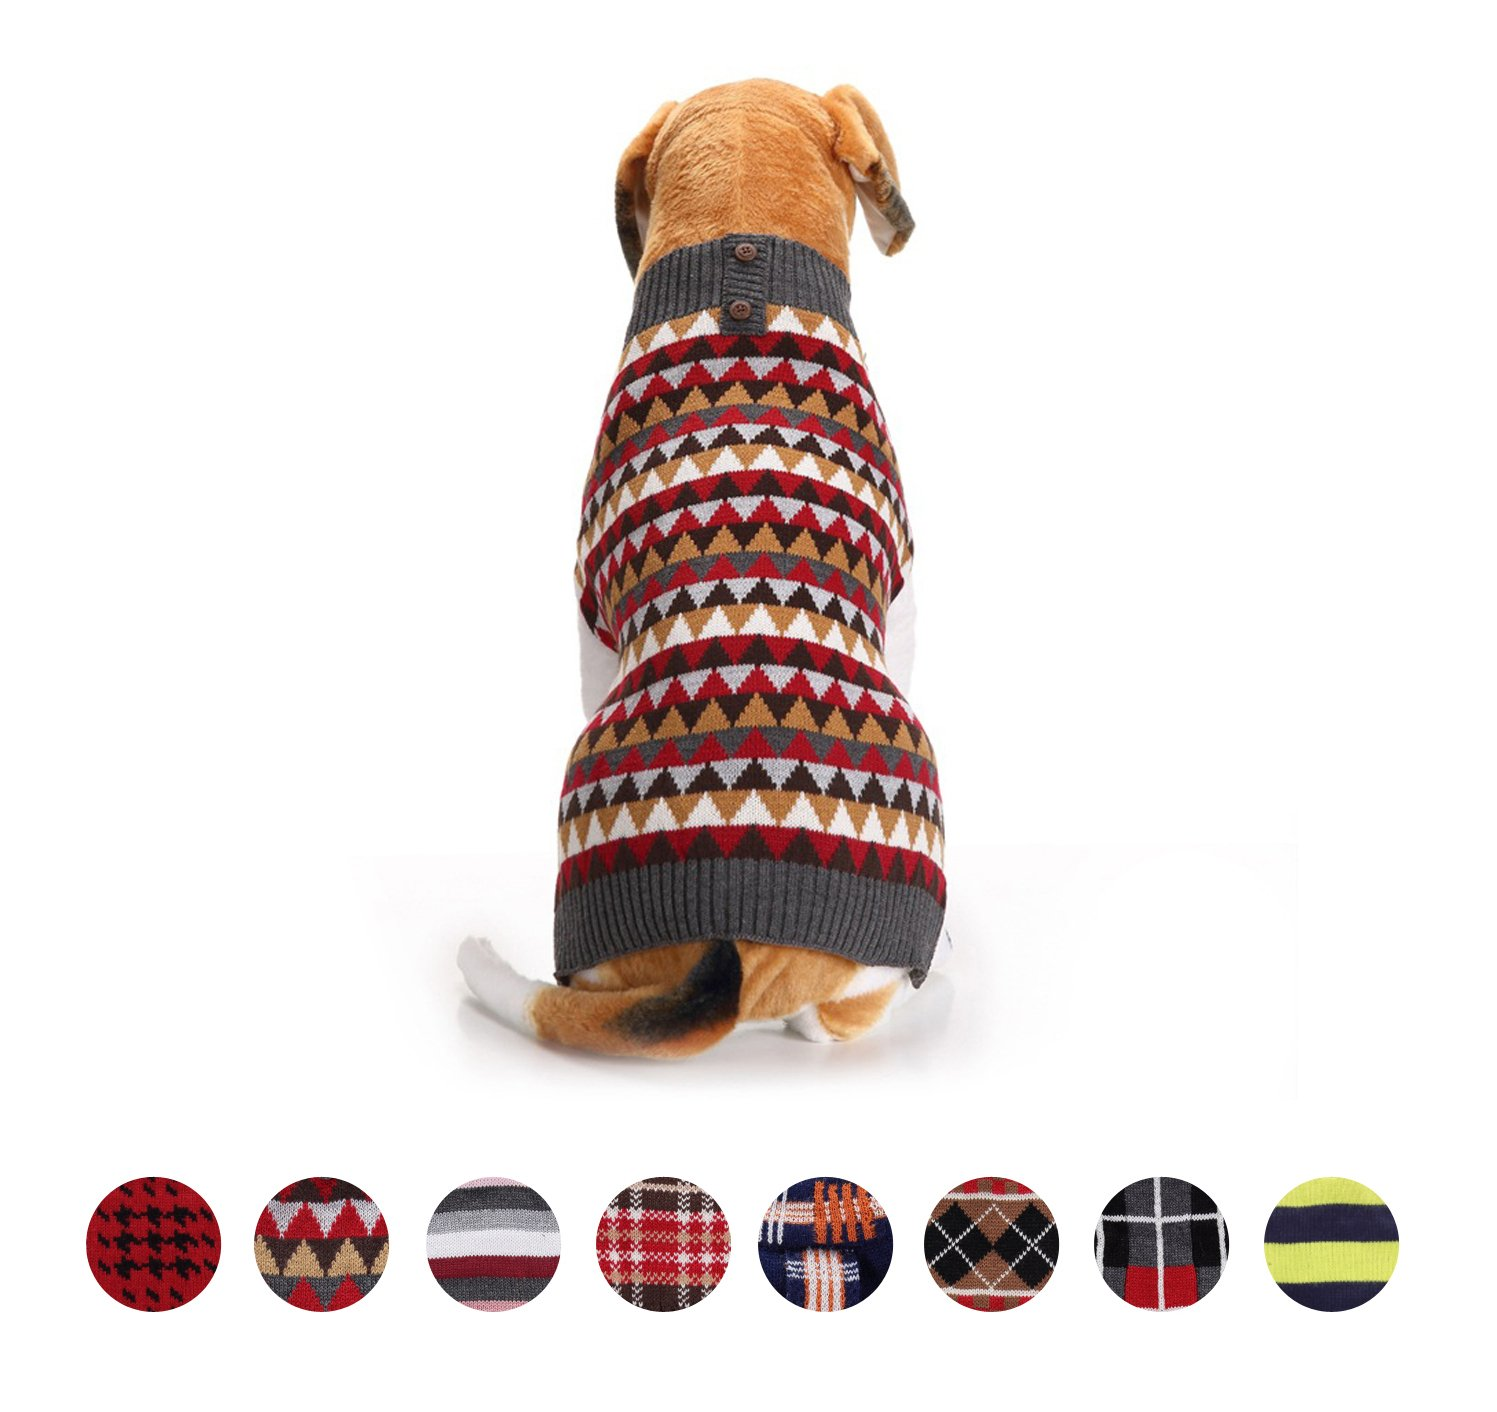 GabeFish Dog Striped Vintage Checked Printed Winter Warm Sweater Fashion Cute Cool Causal Pattern Pets Knit Clothes Red Large